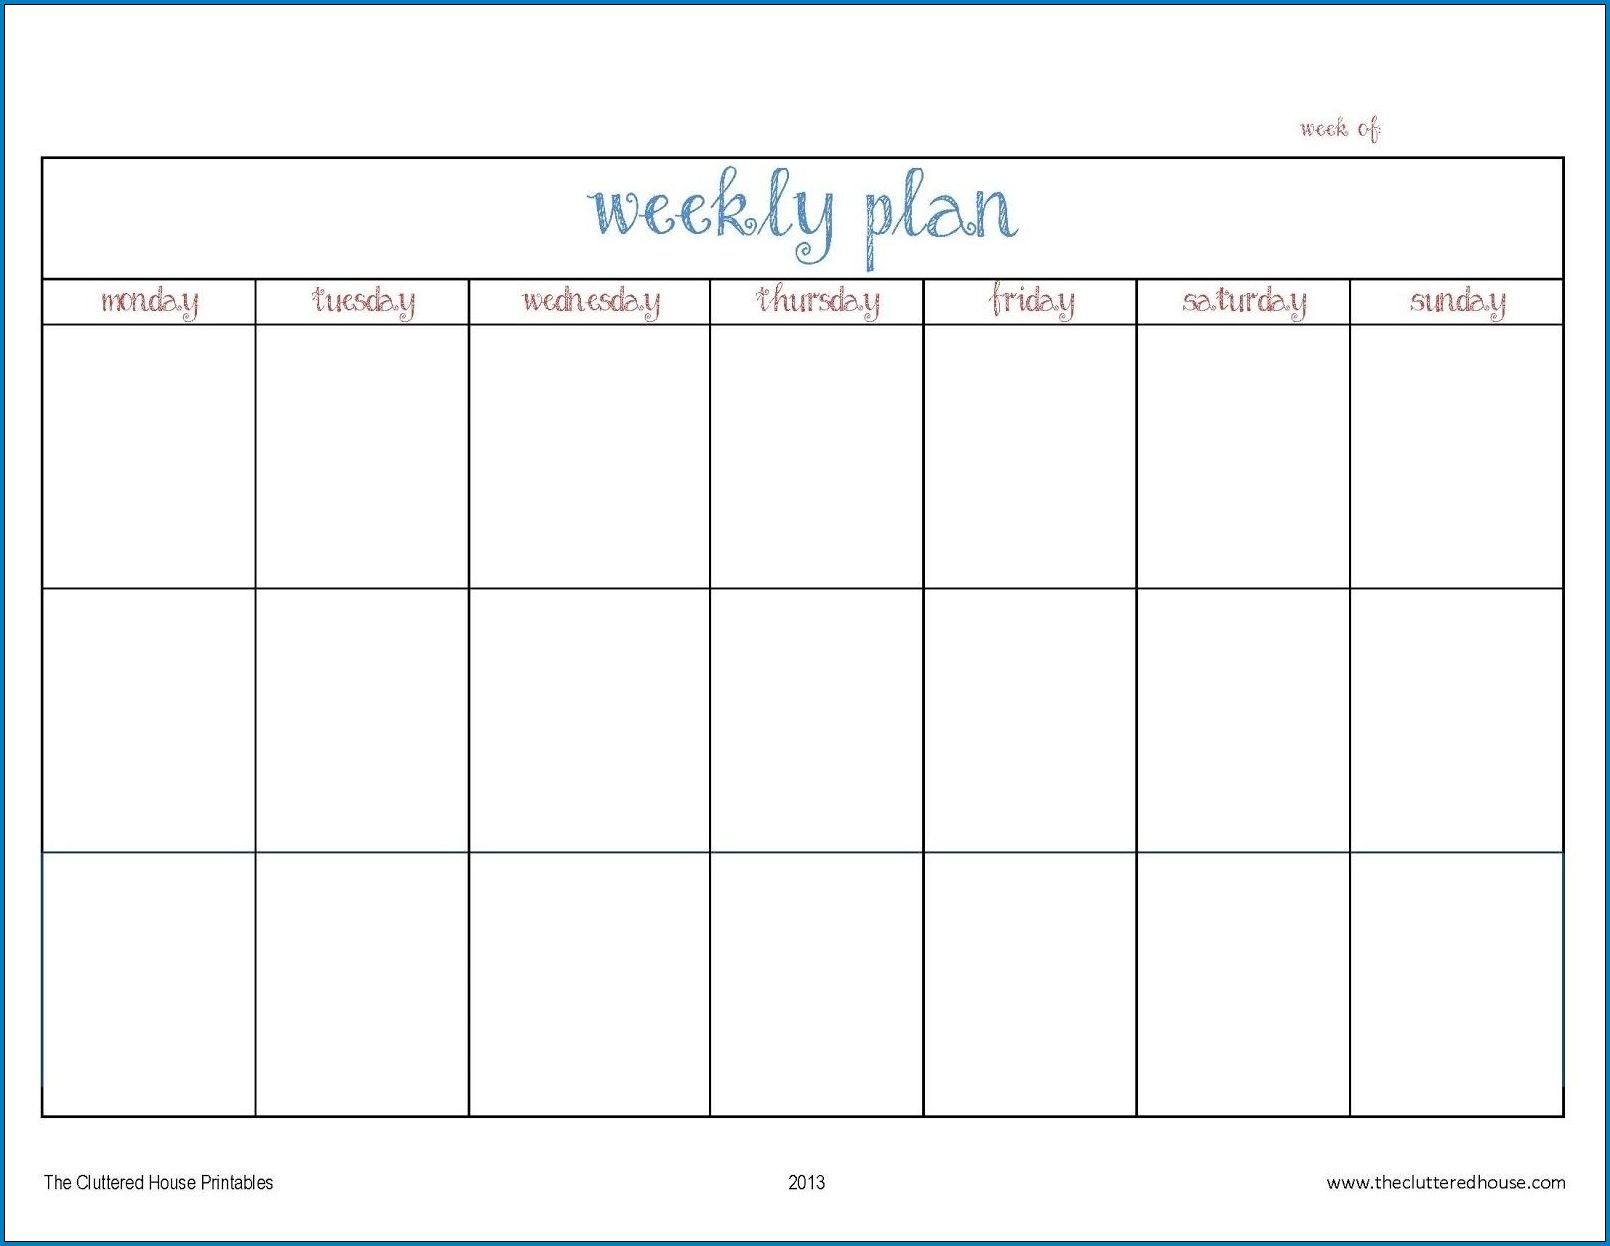 Example of Weekly Planner Template